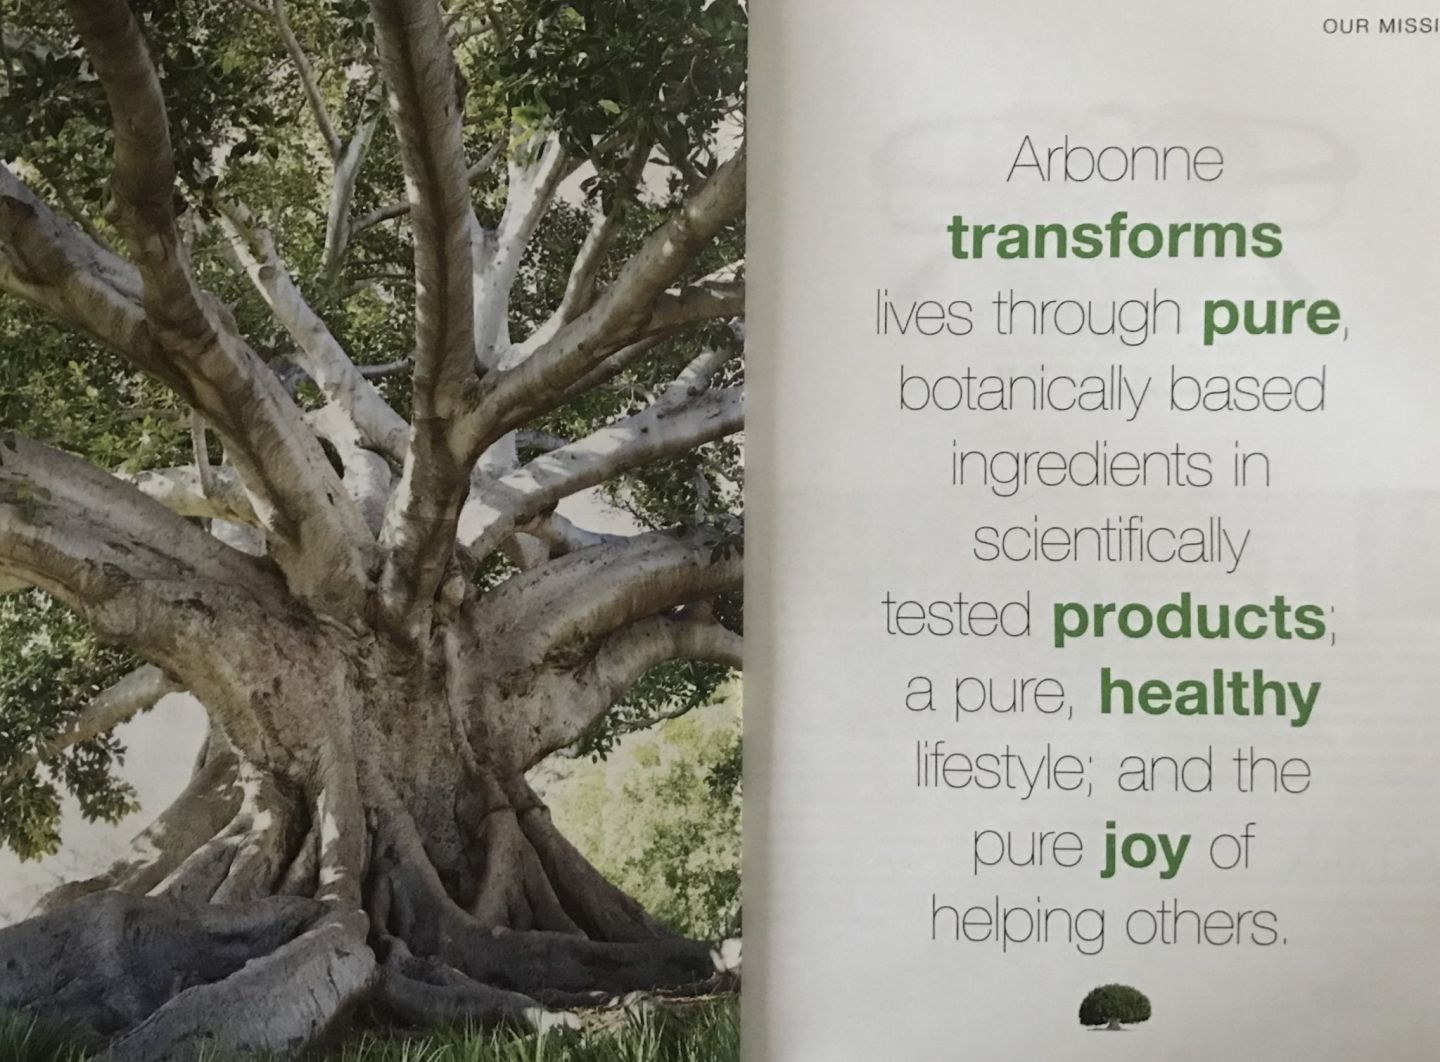 Arbonne mission statement